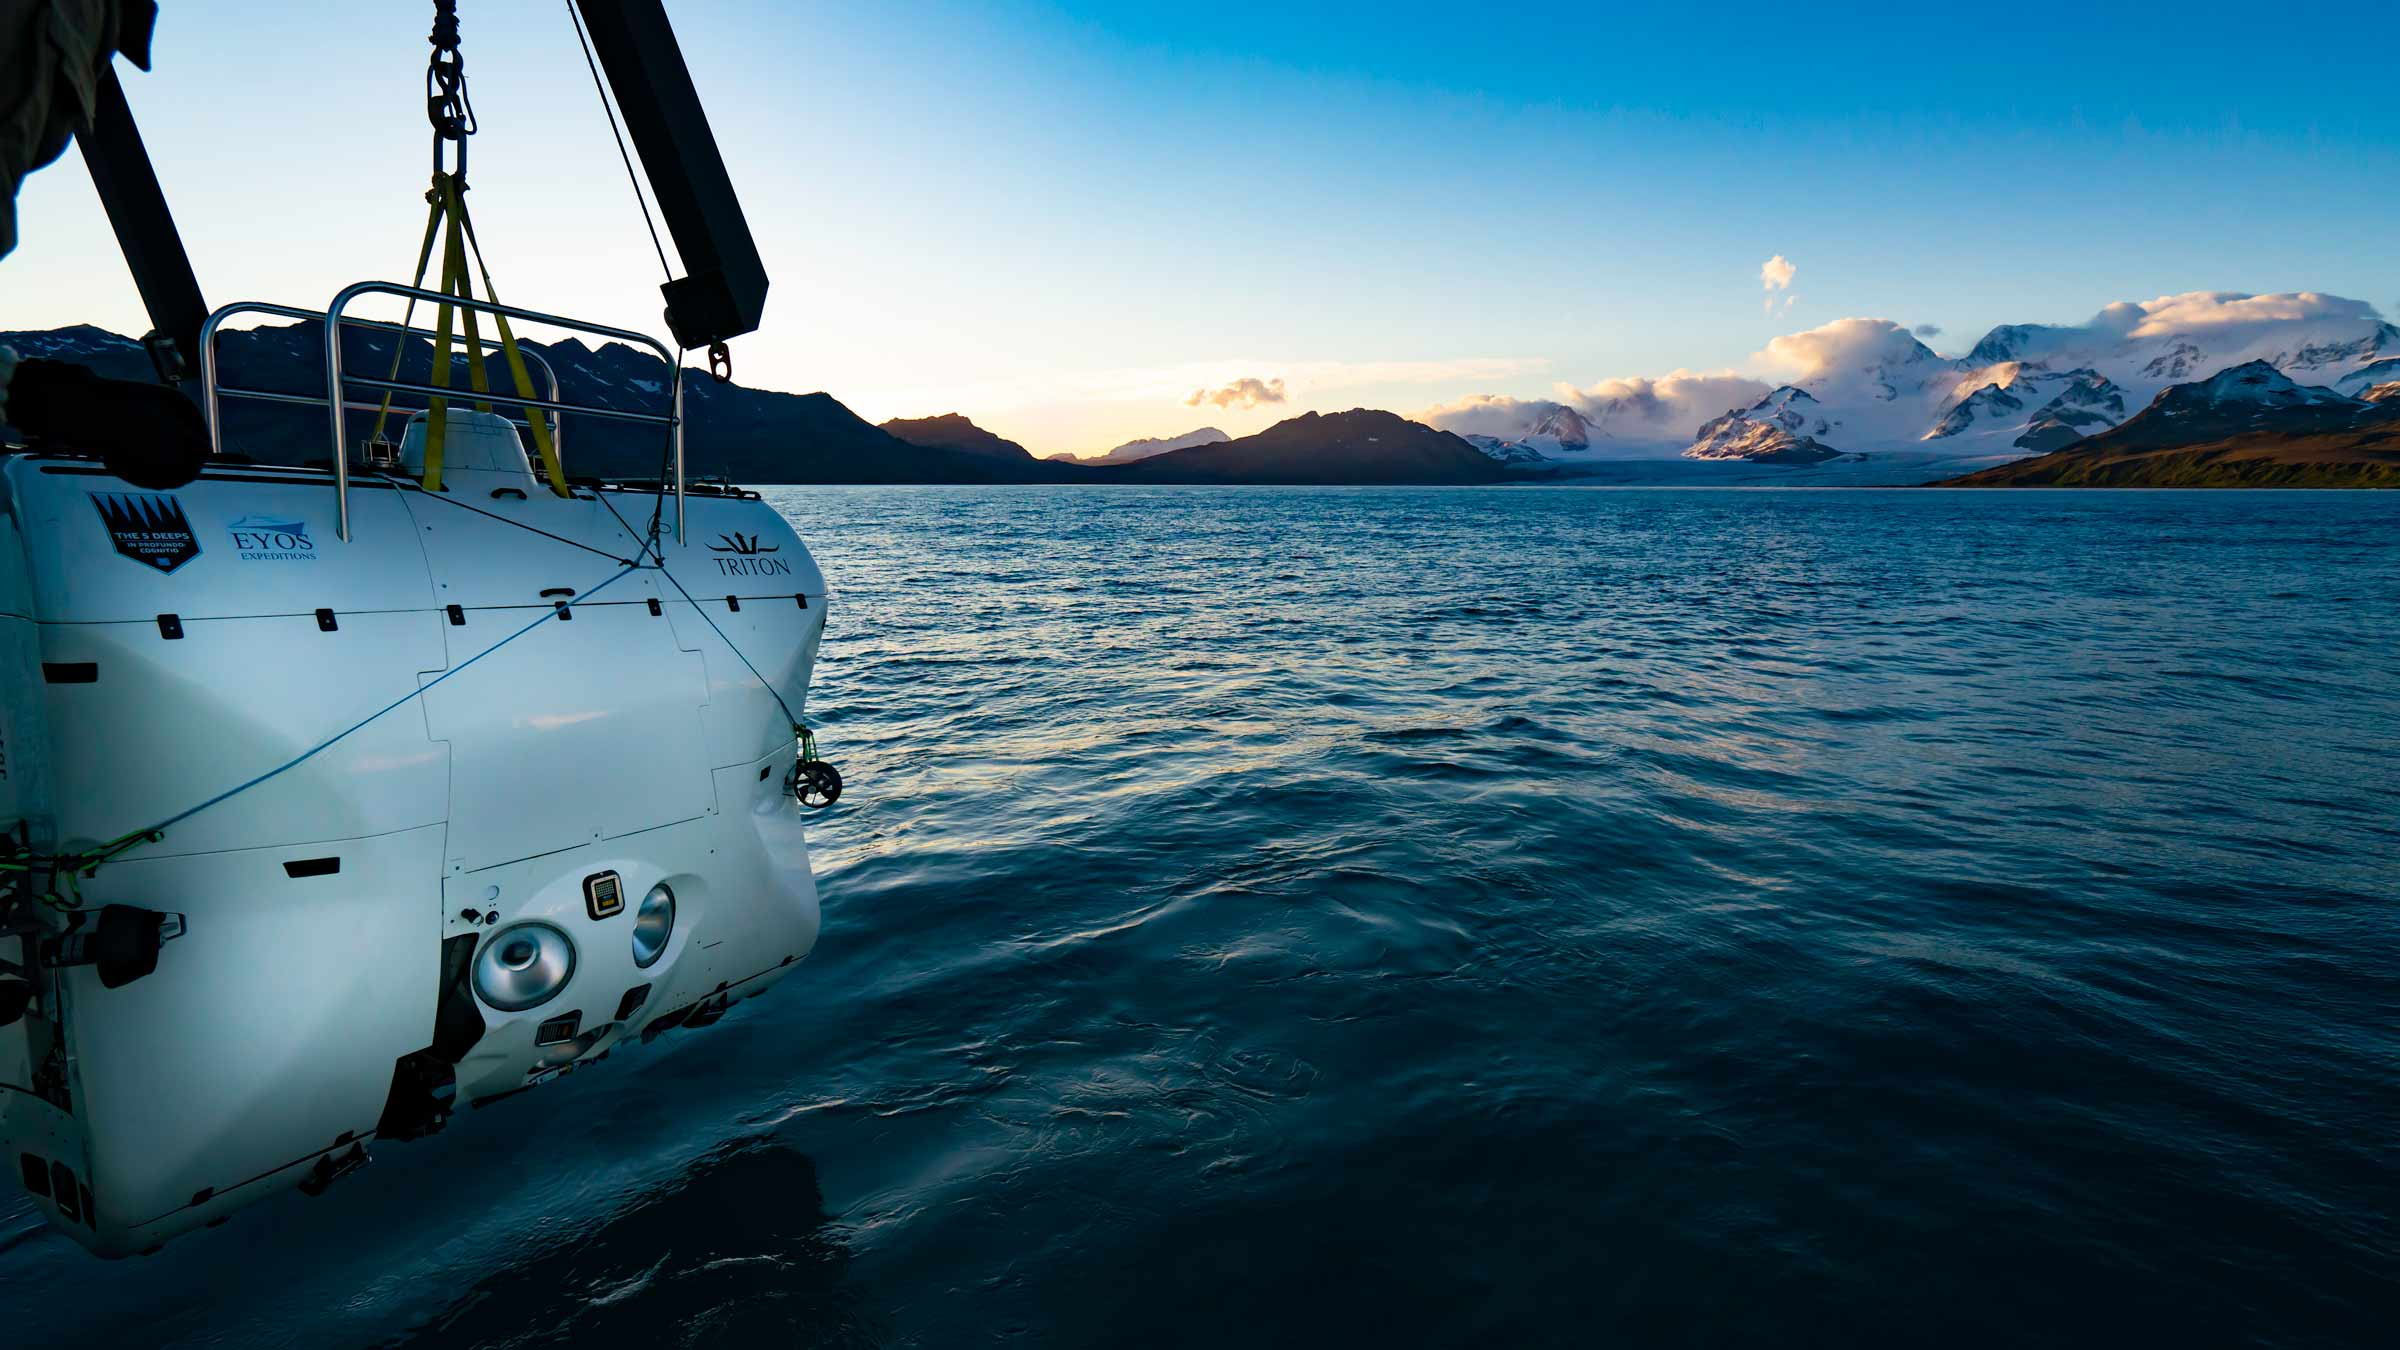 Triton 33000/2 launches in Southern Ocean. Richard Varcoe